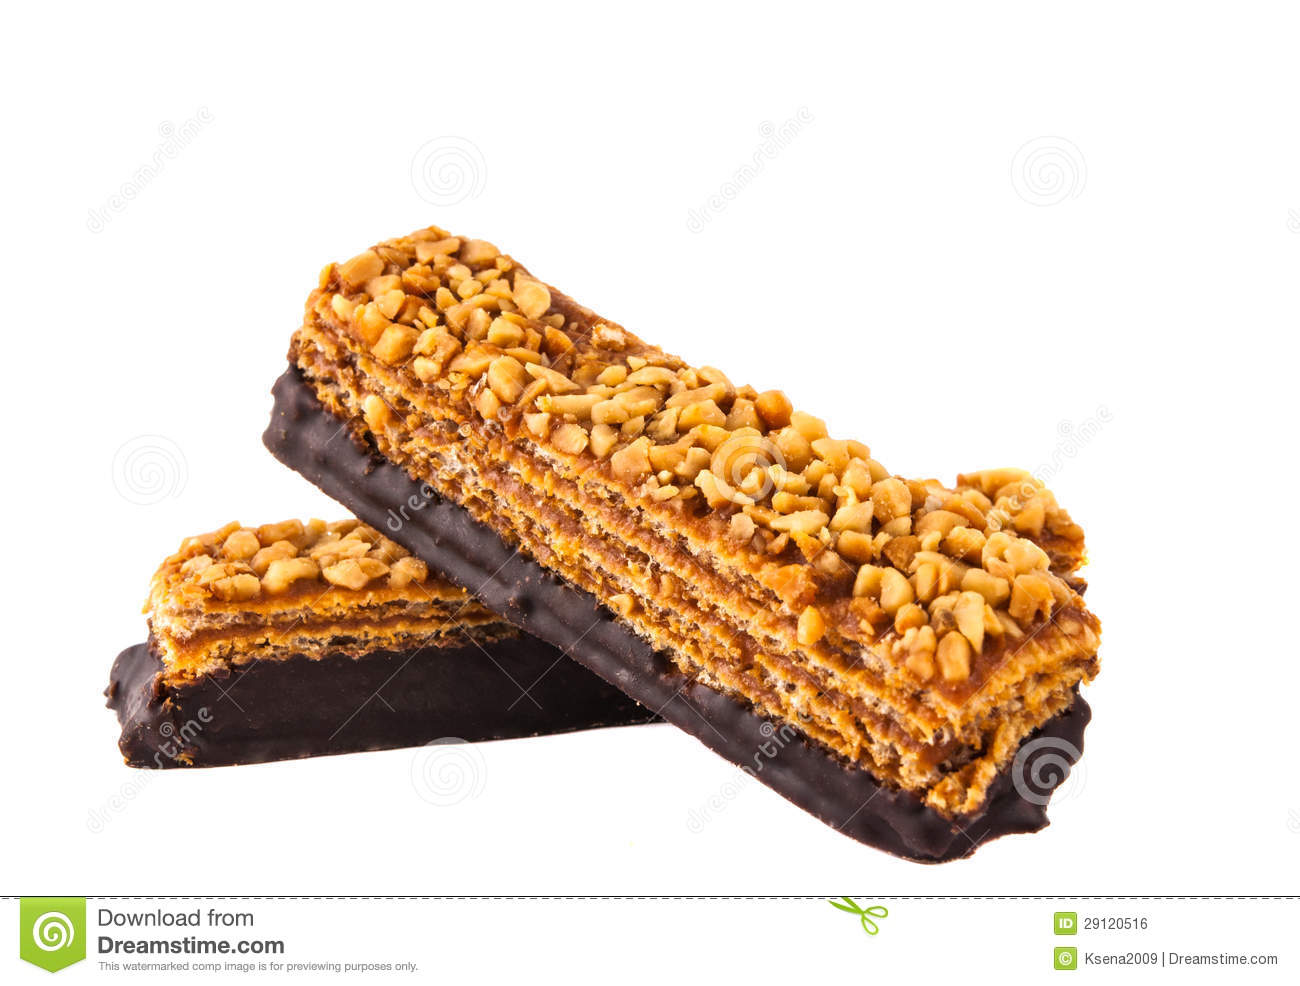 Wafers With Nuts Royalty Free Stock Image - Image: 29120516